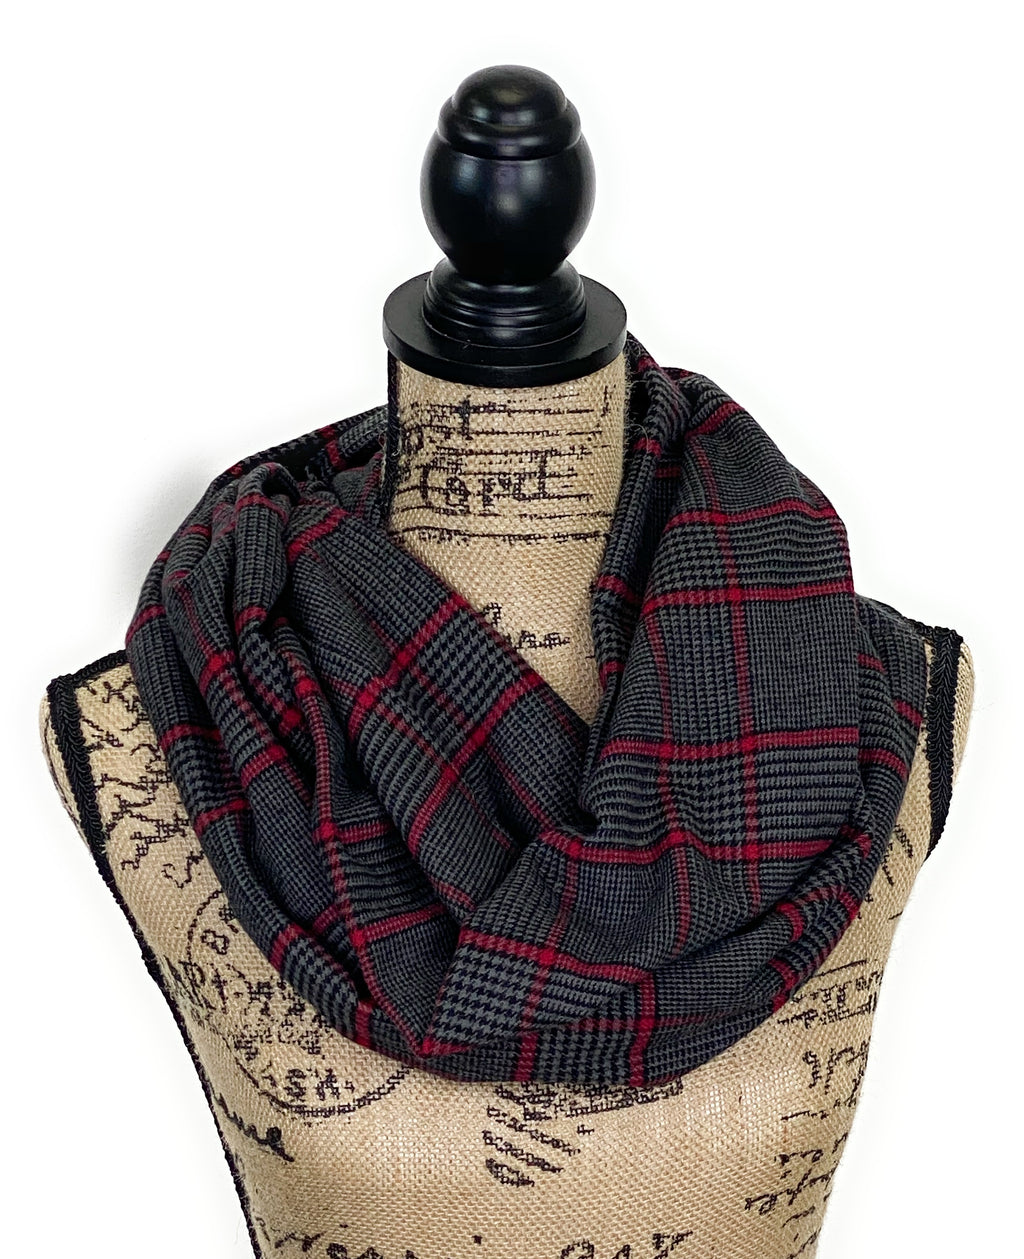 NEW Dark Gray, Black, and Red Houndstooth Plaid Medium Weight Flannel Scarf